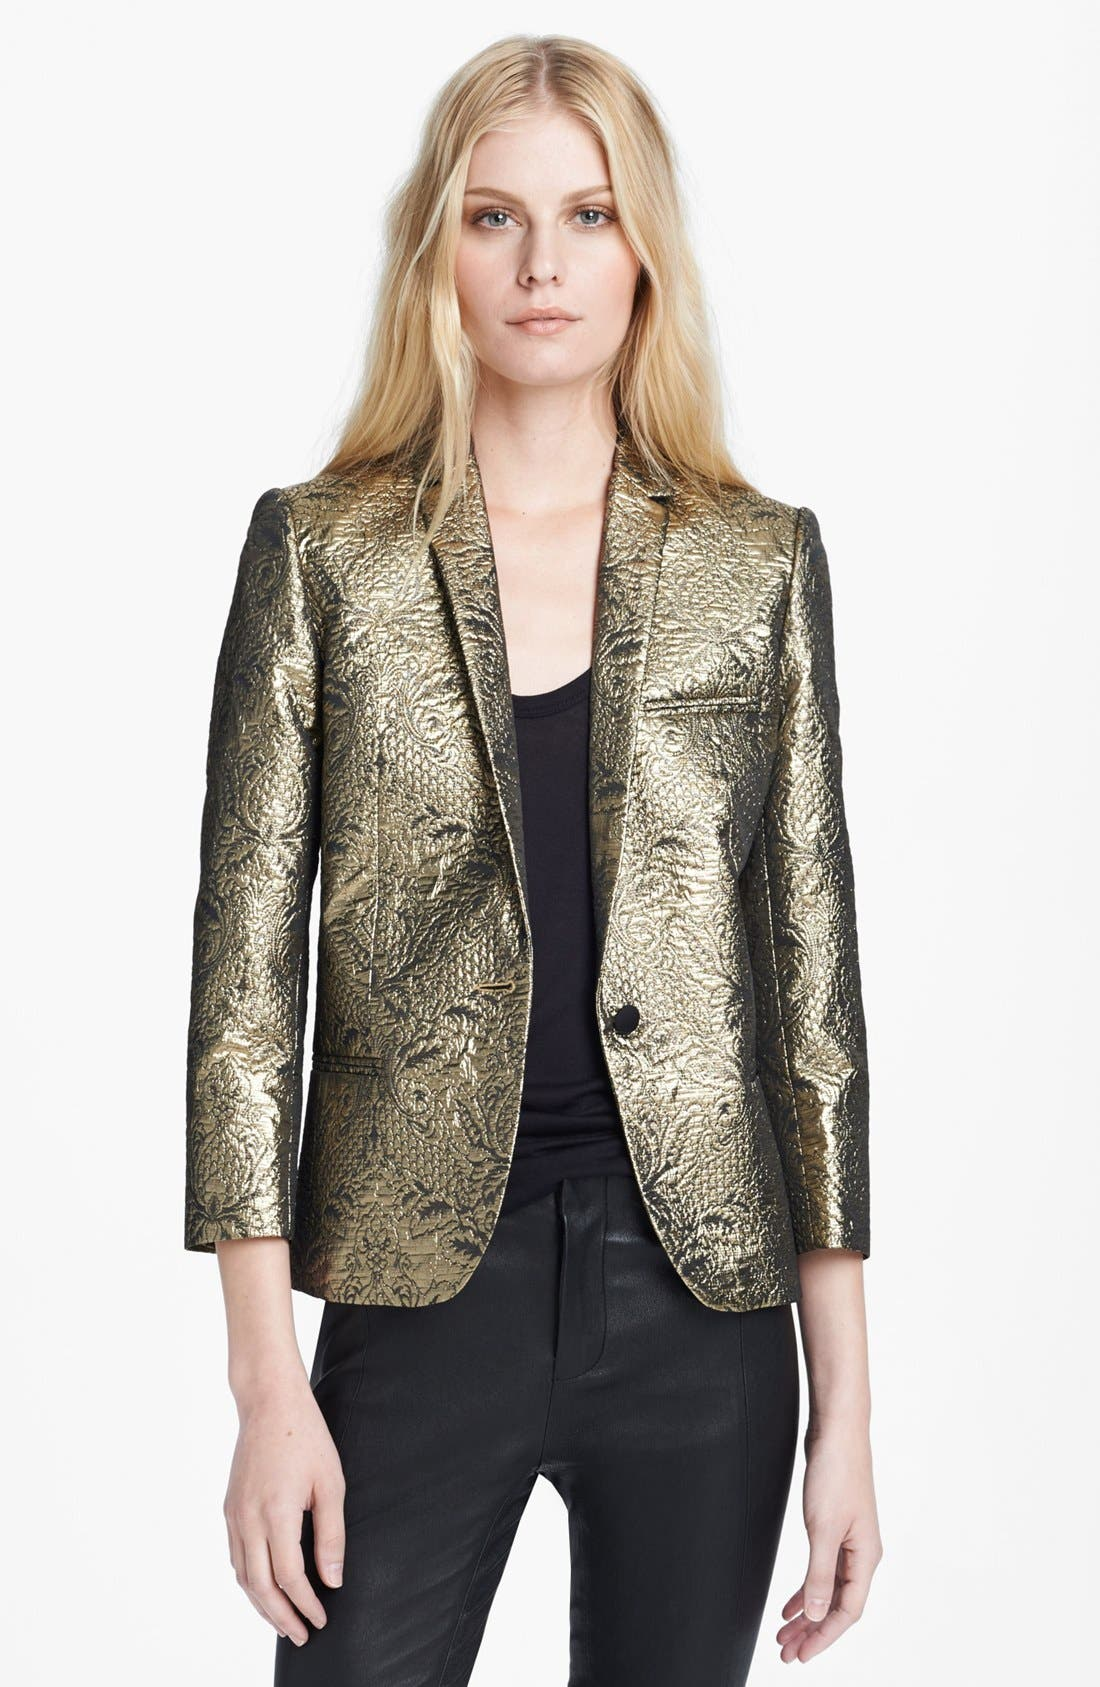 Alternate Image 1 Selected - Zadig & Voltaire 'Volta' Metallic Brocade Jacket